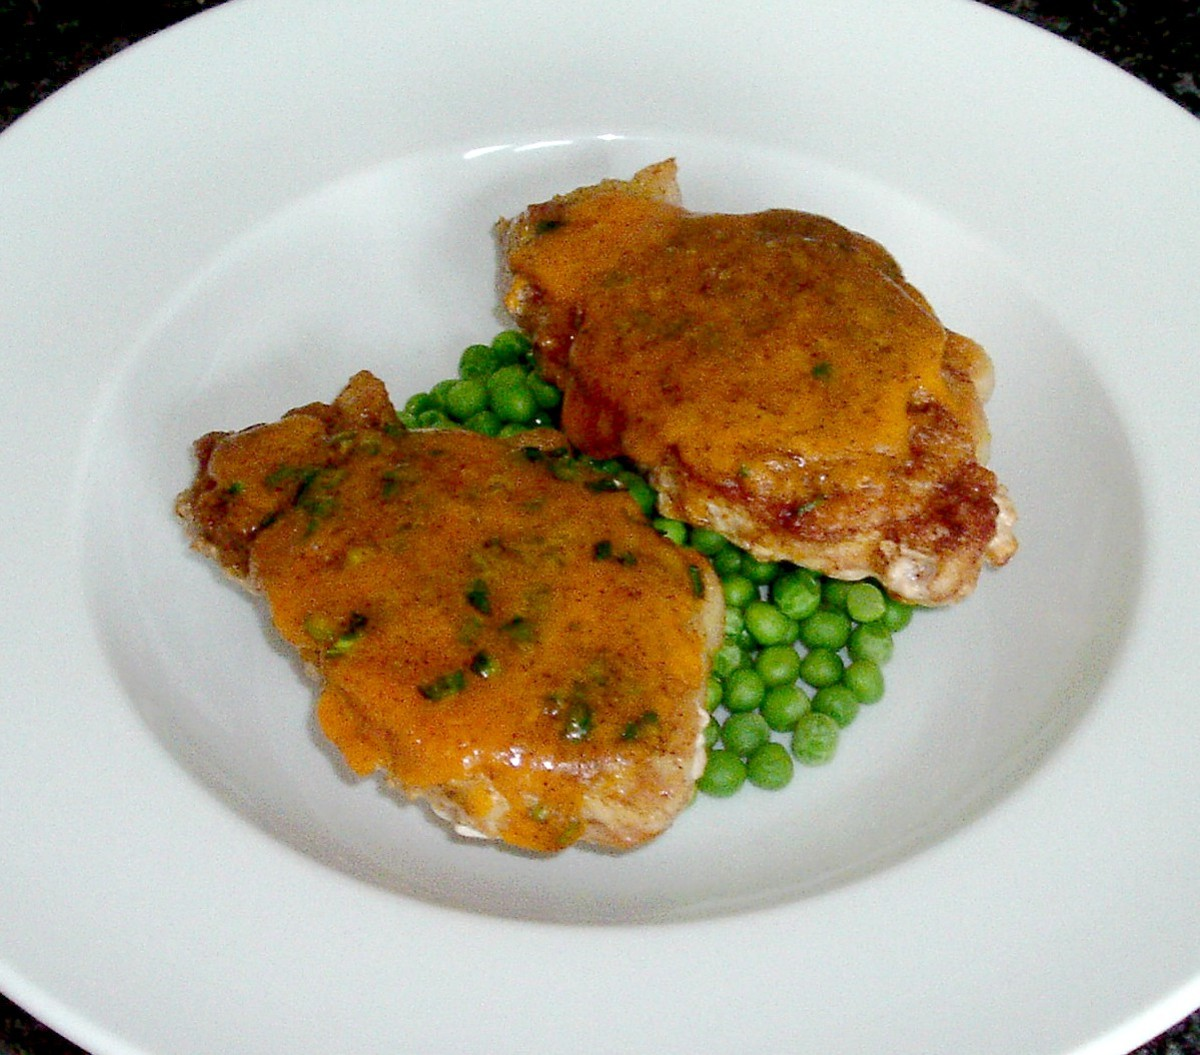 Spicy cheese pork steak tops each curried potato half